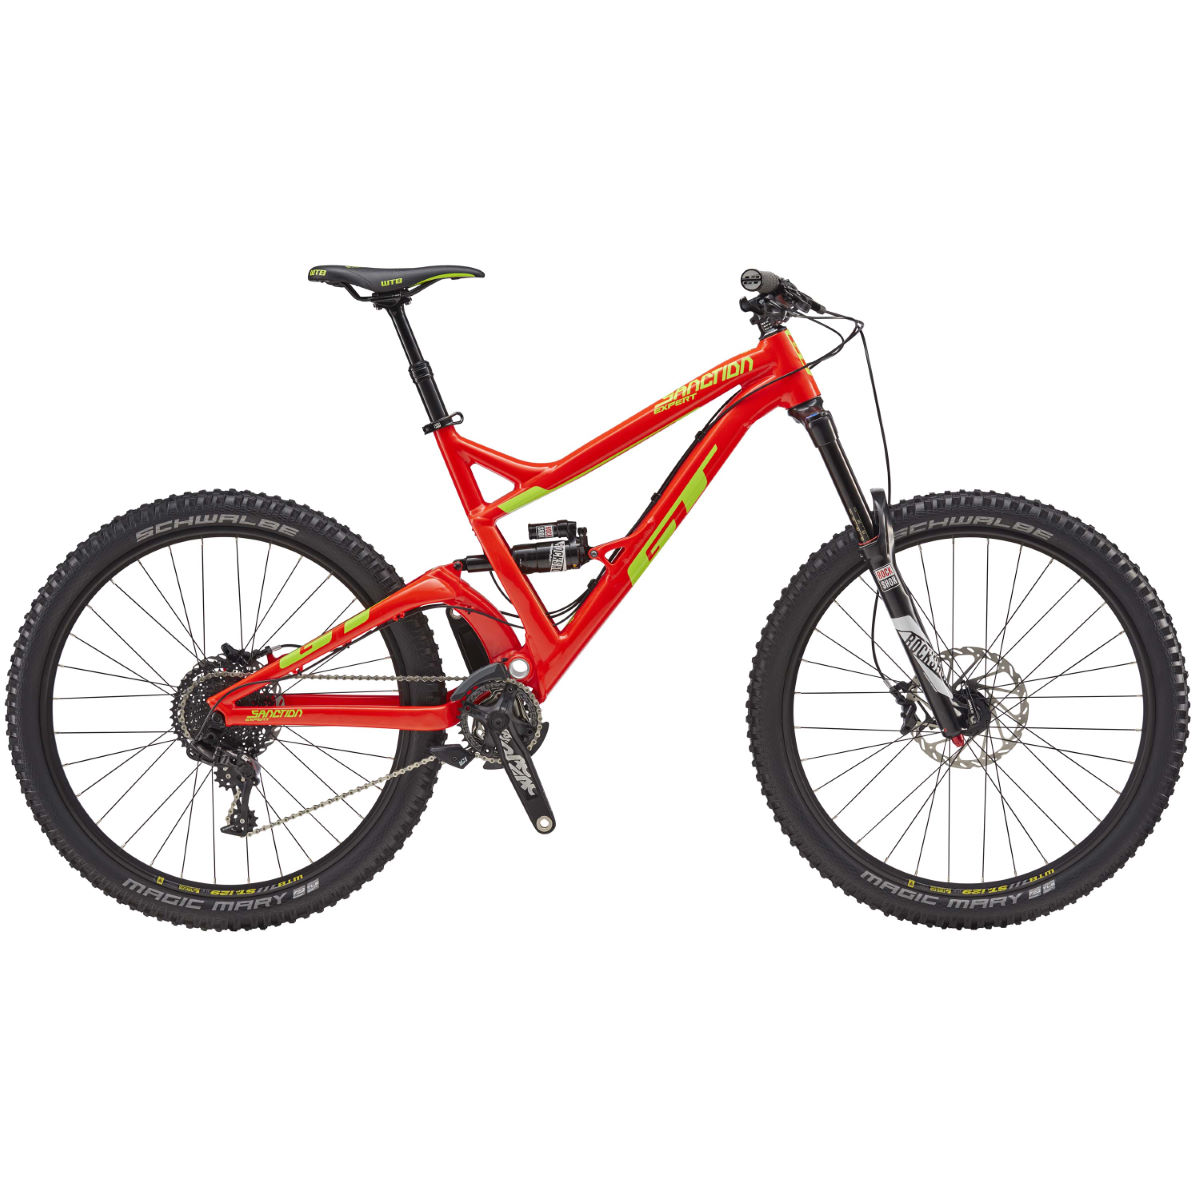 GT Sanction Expert (2017) Mountain Bike   Full Suspension Mountain Bikes